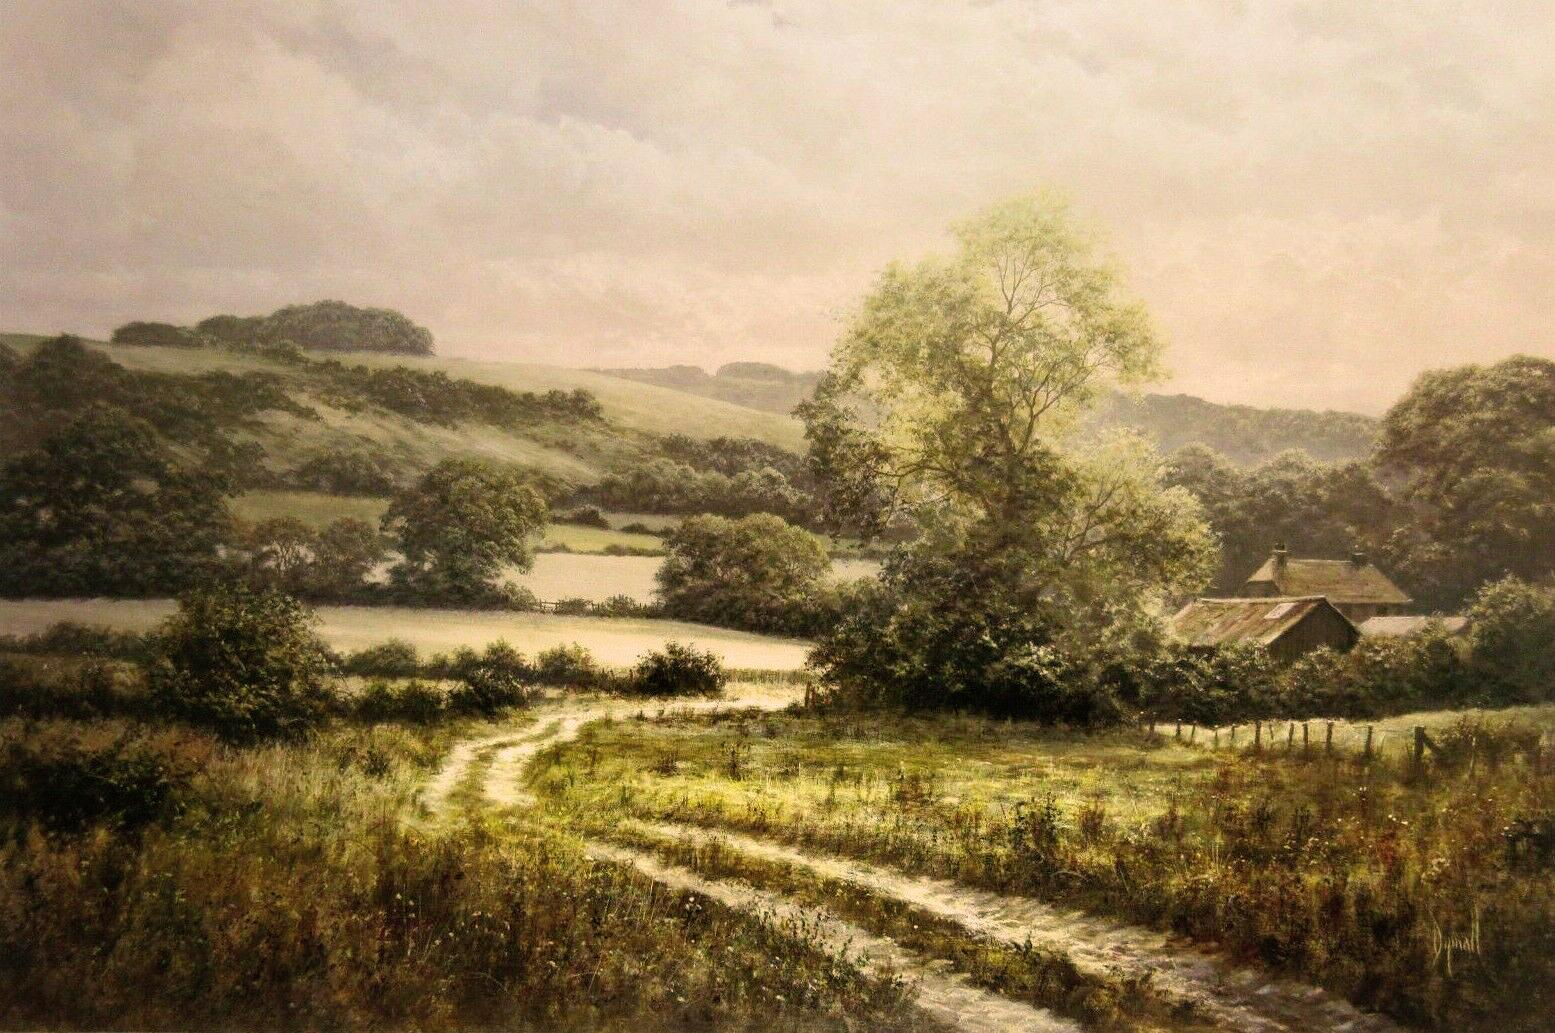 Farm Beneath the Downs by David Dipnall - landscape art print